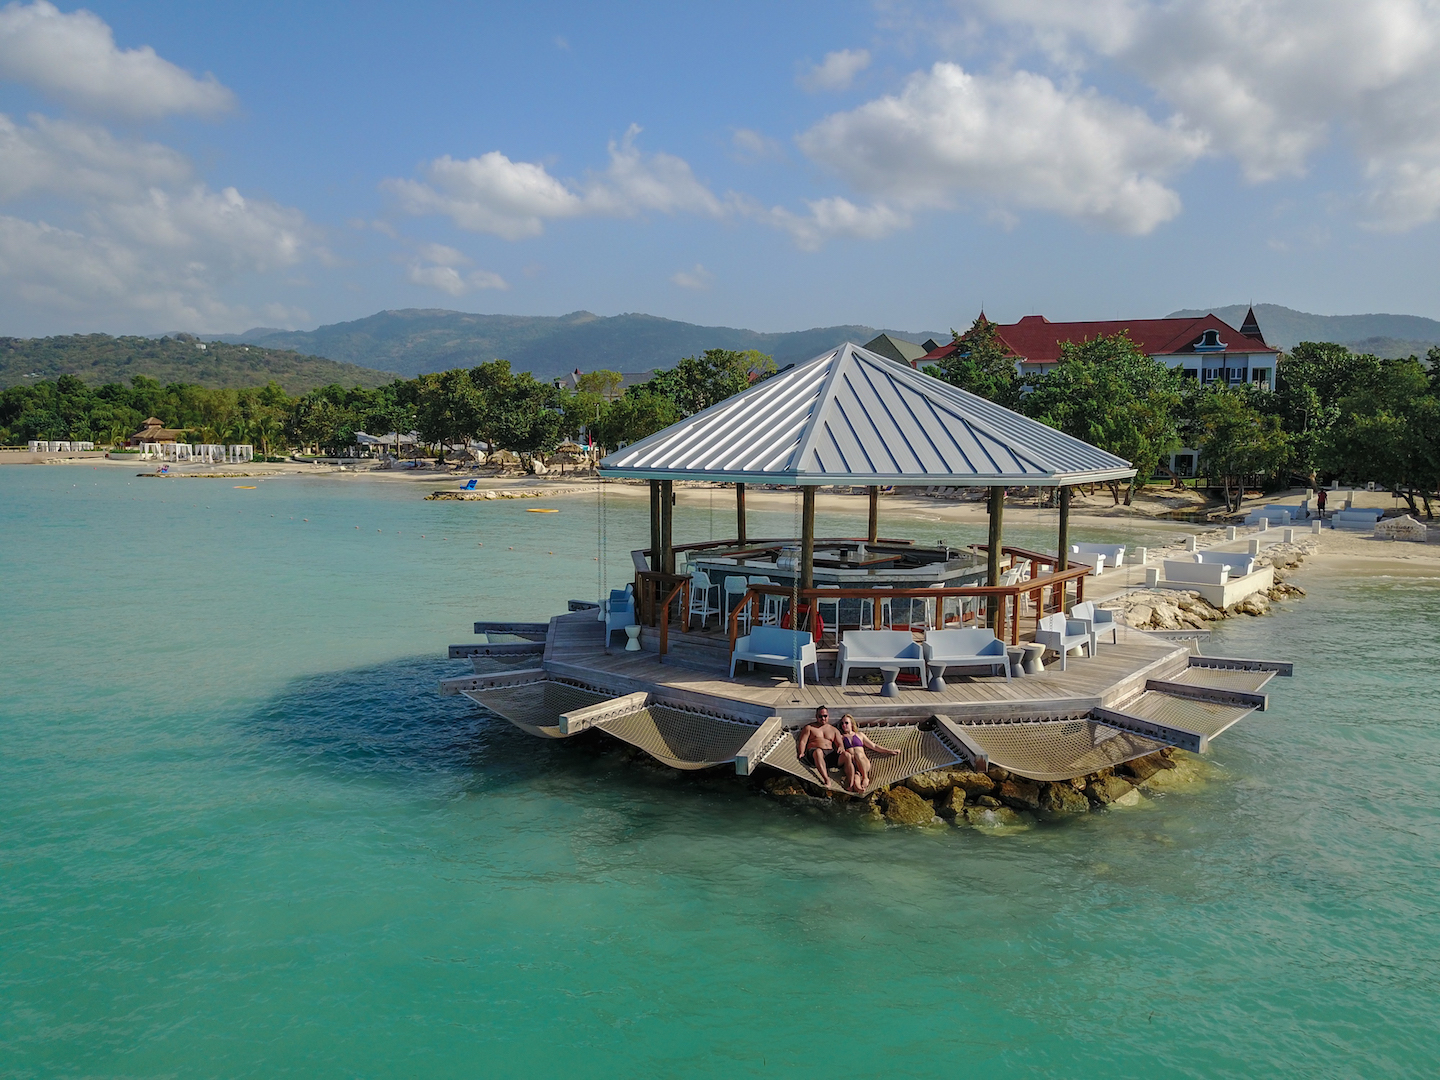 The Best Sandals Resort: How to Choose Which Sandals is Right for me? - Fit Two Travel